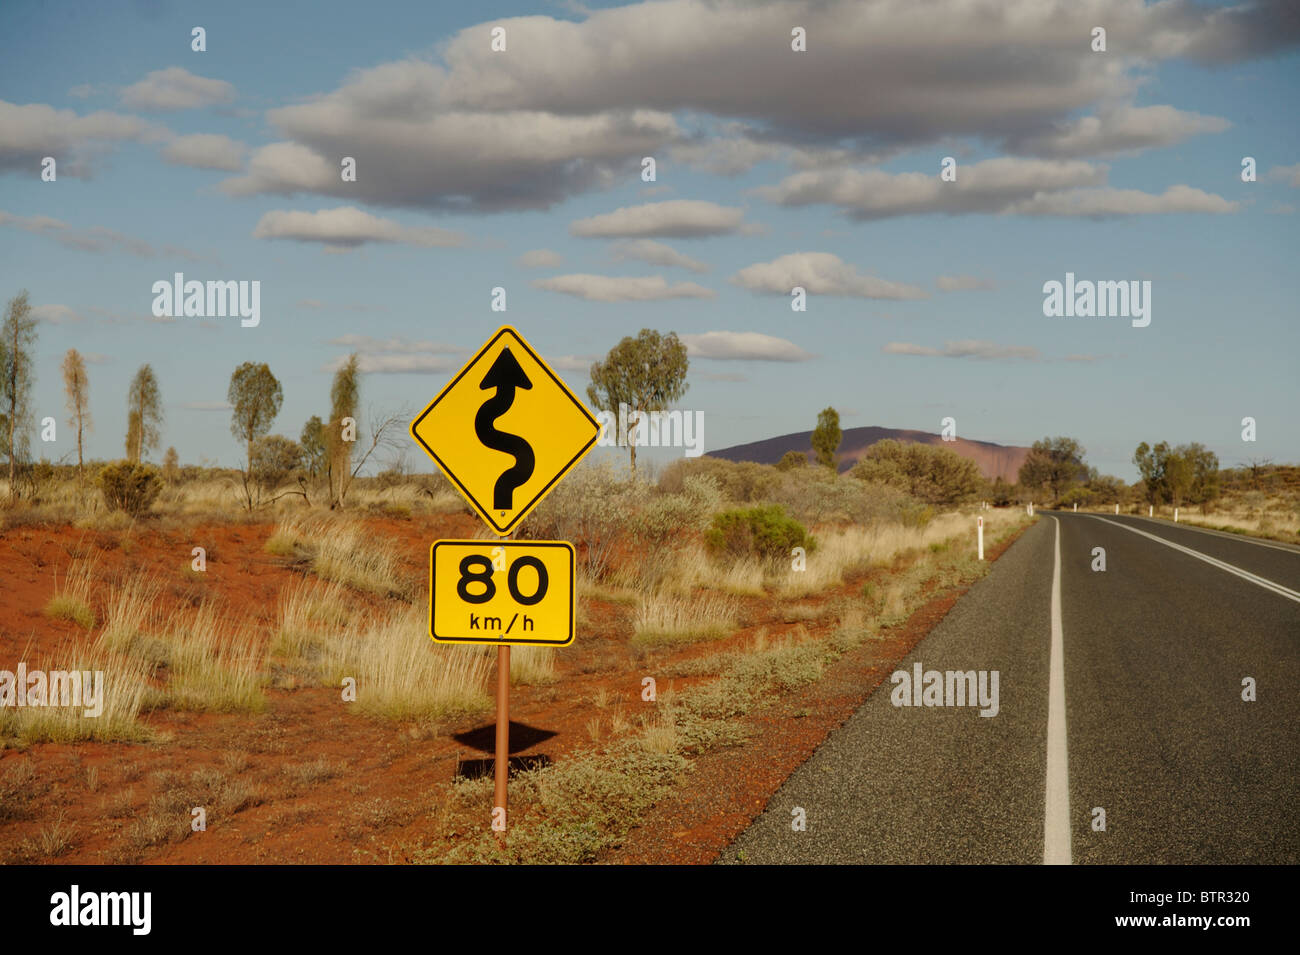 Australia, Northern Territory, Uluru-Kata Tjuta National Park, View of road sign on roadside Stock Photo